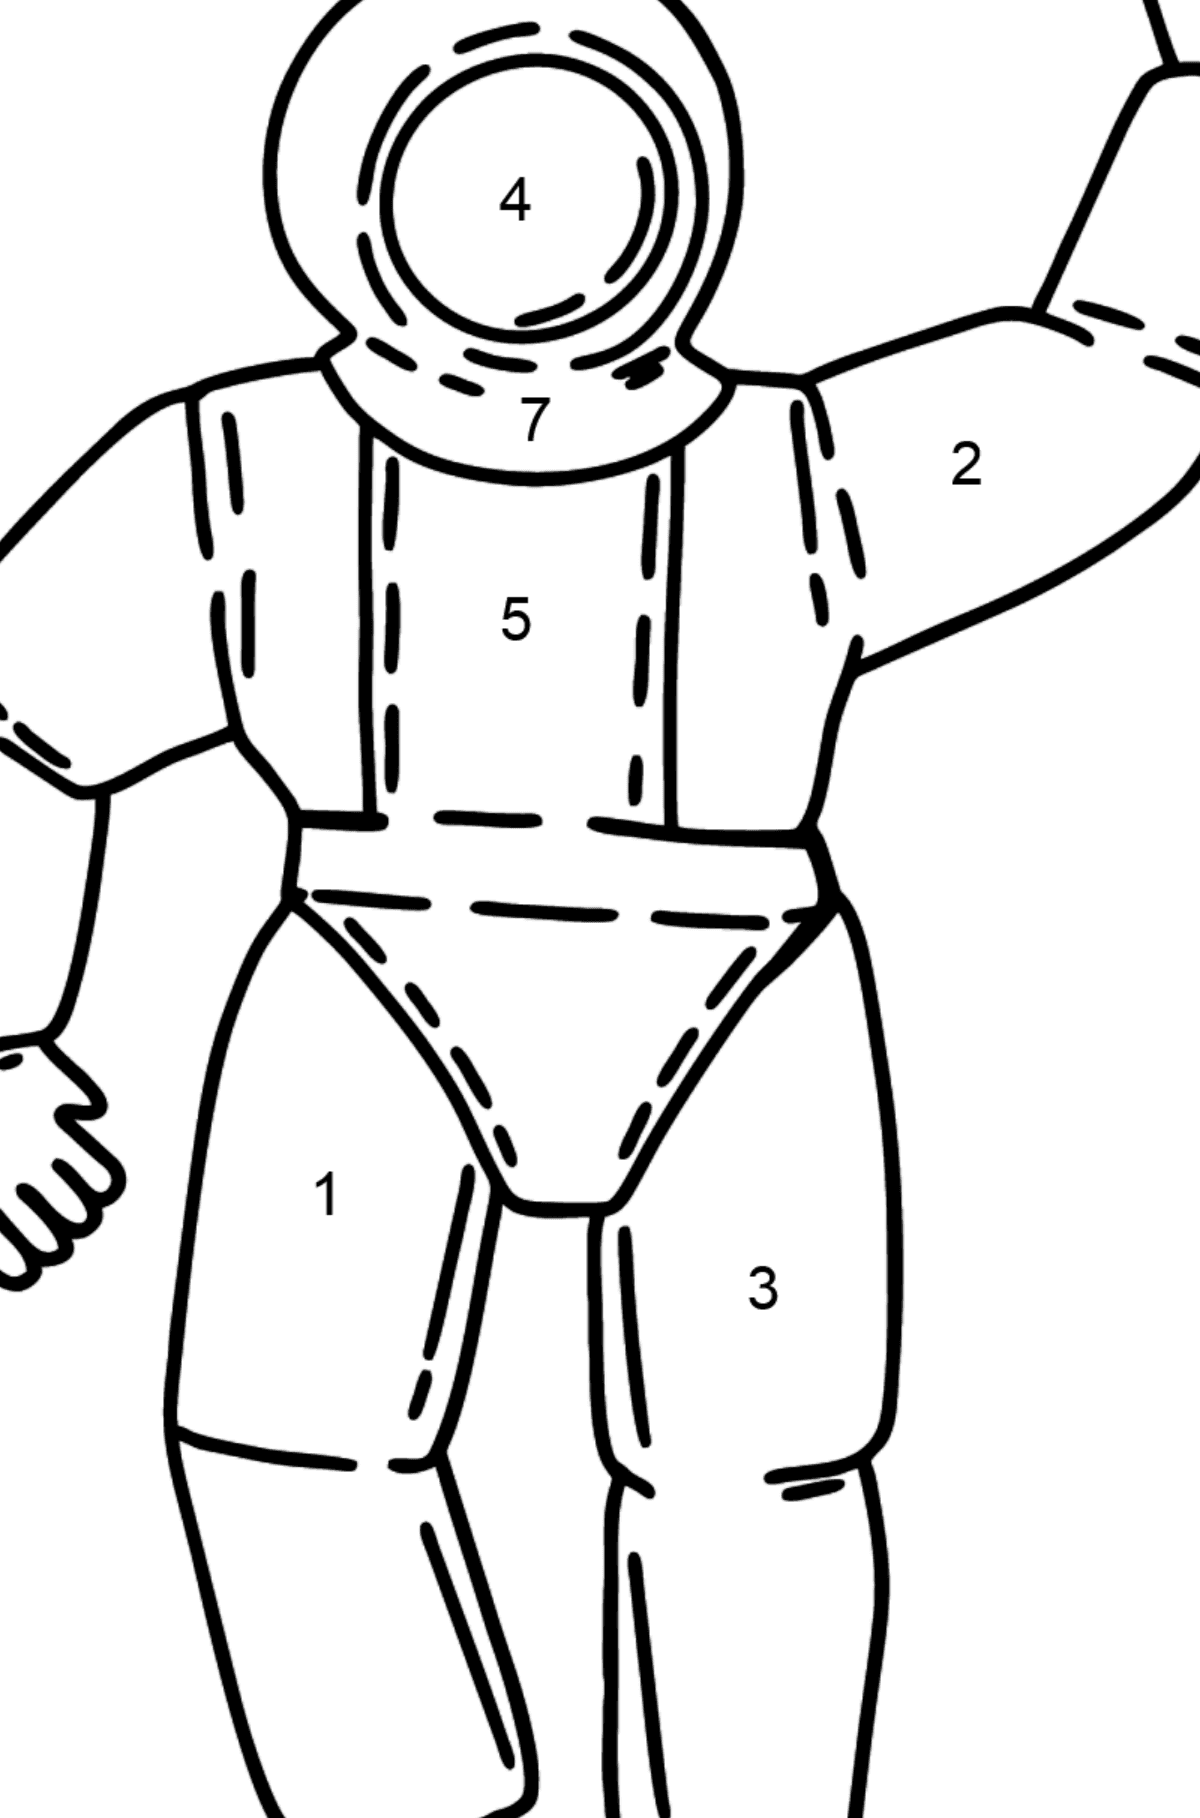 Astronaut coloring page - Coloring by Numbers for Kids